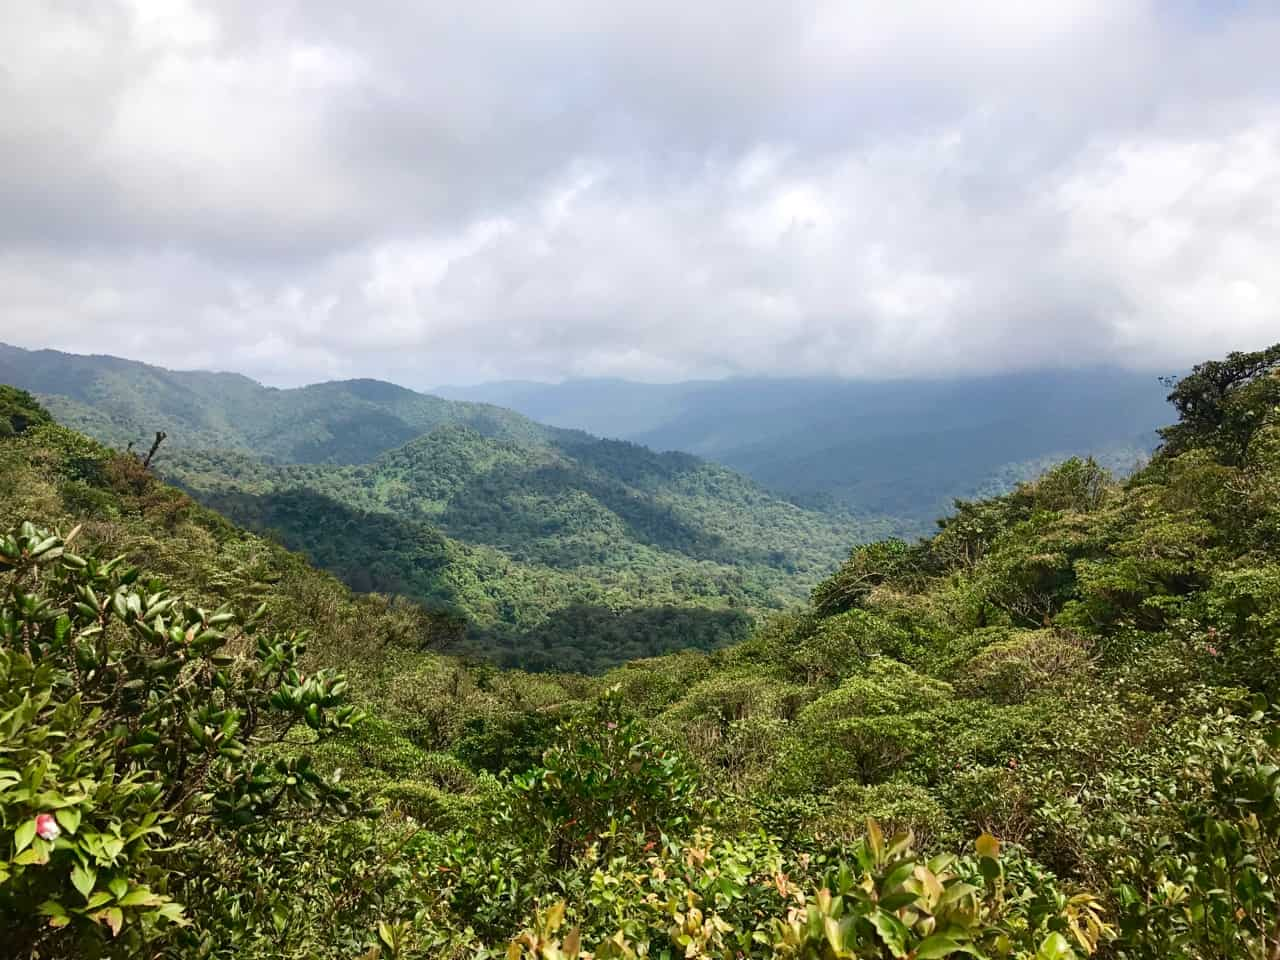 View of the Continental Divide from Monteverde Cloud Forest, one of the best parks in Costa Rica.